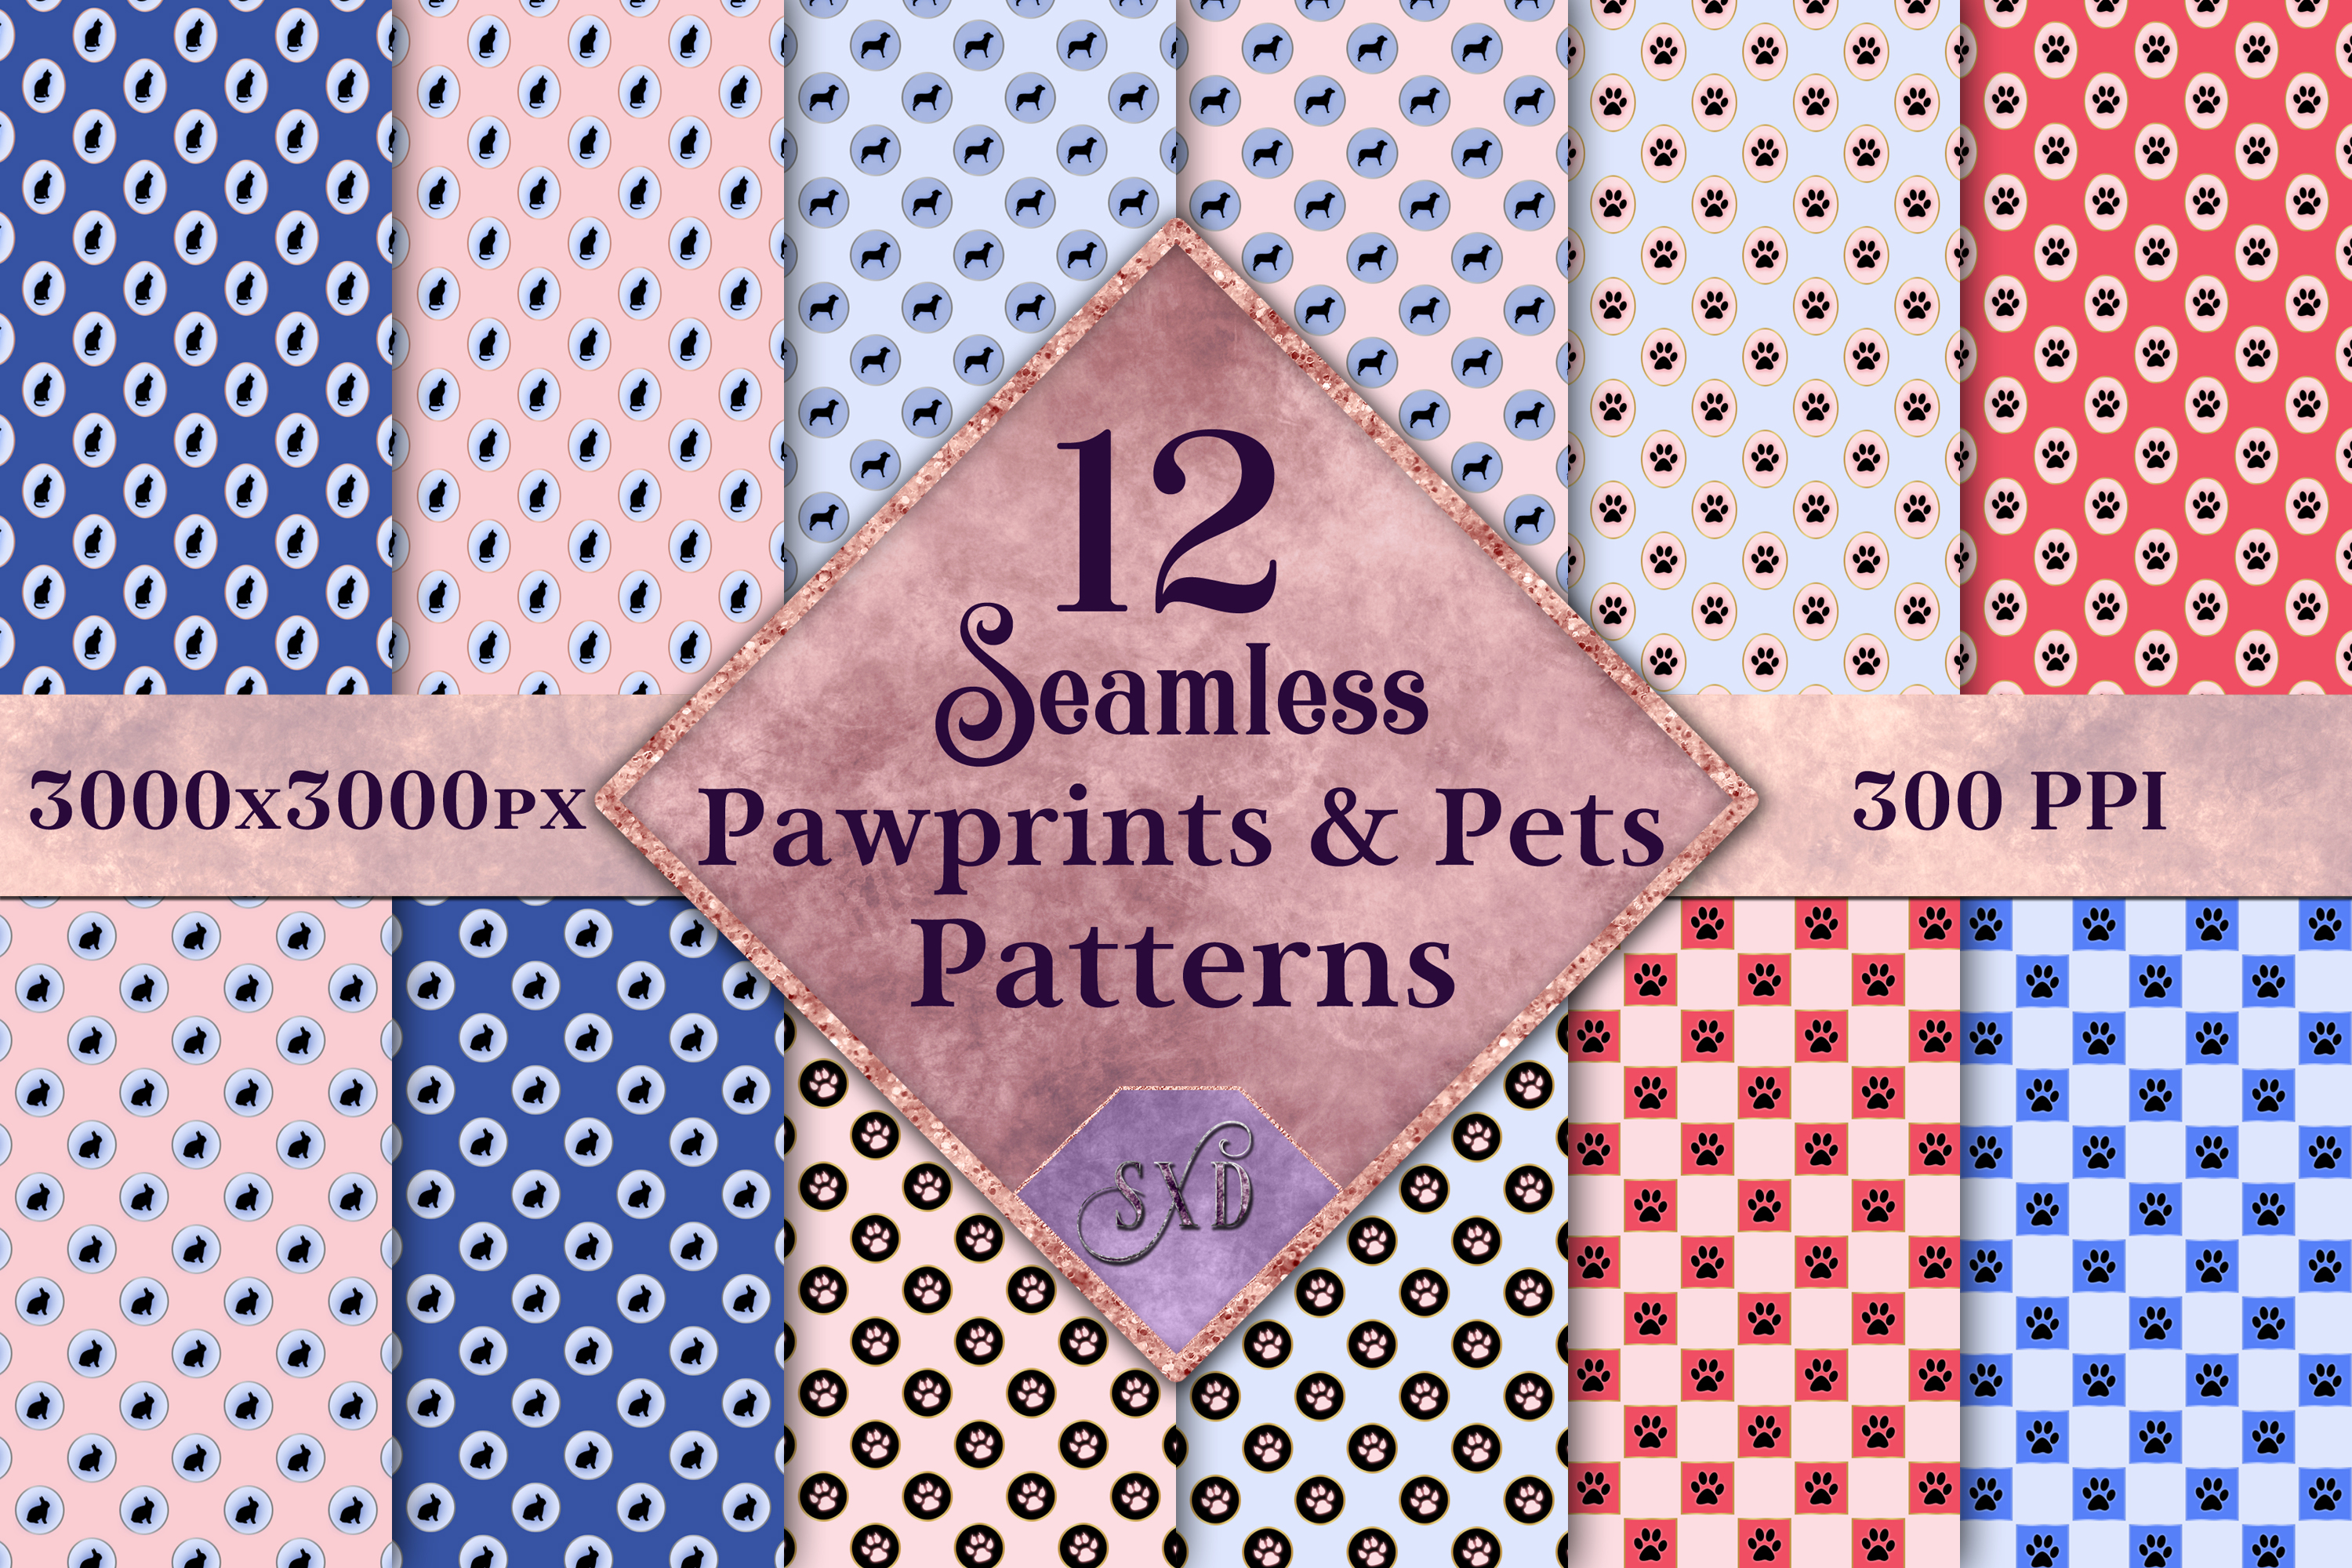 Seamless Pawprints & Pets Patterns - 12 Images example image 1